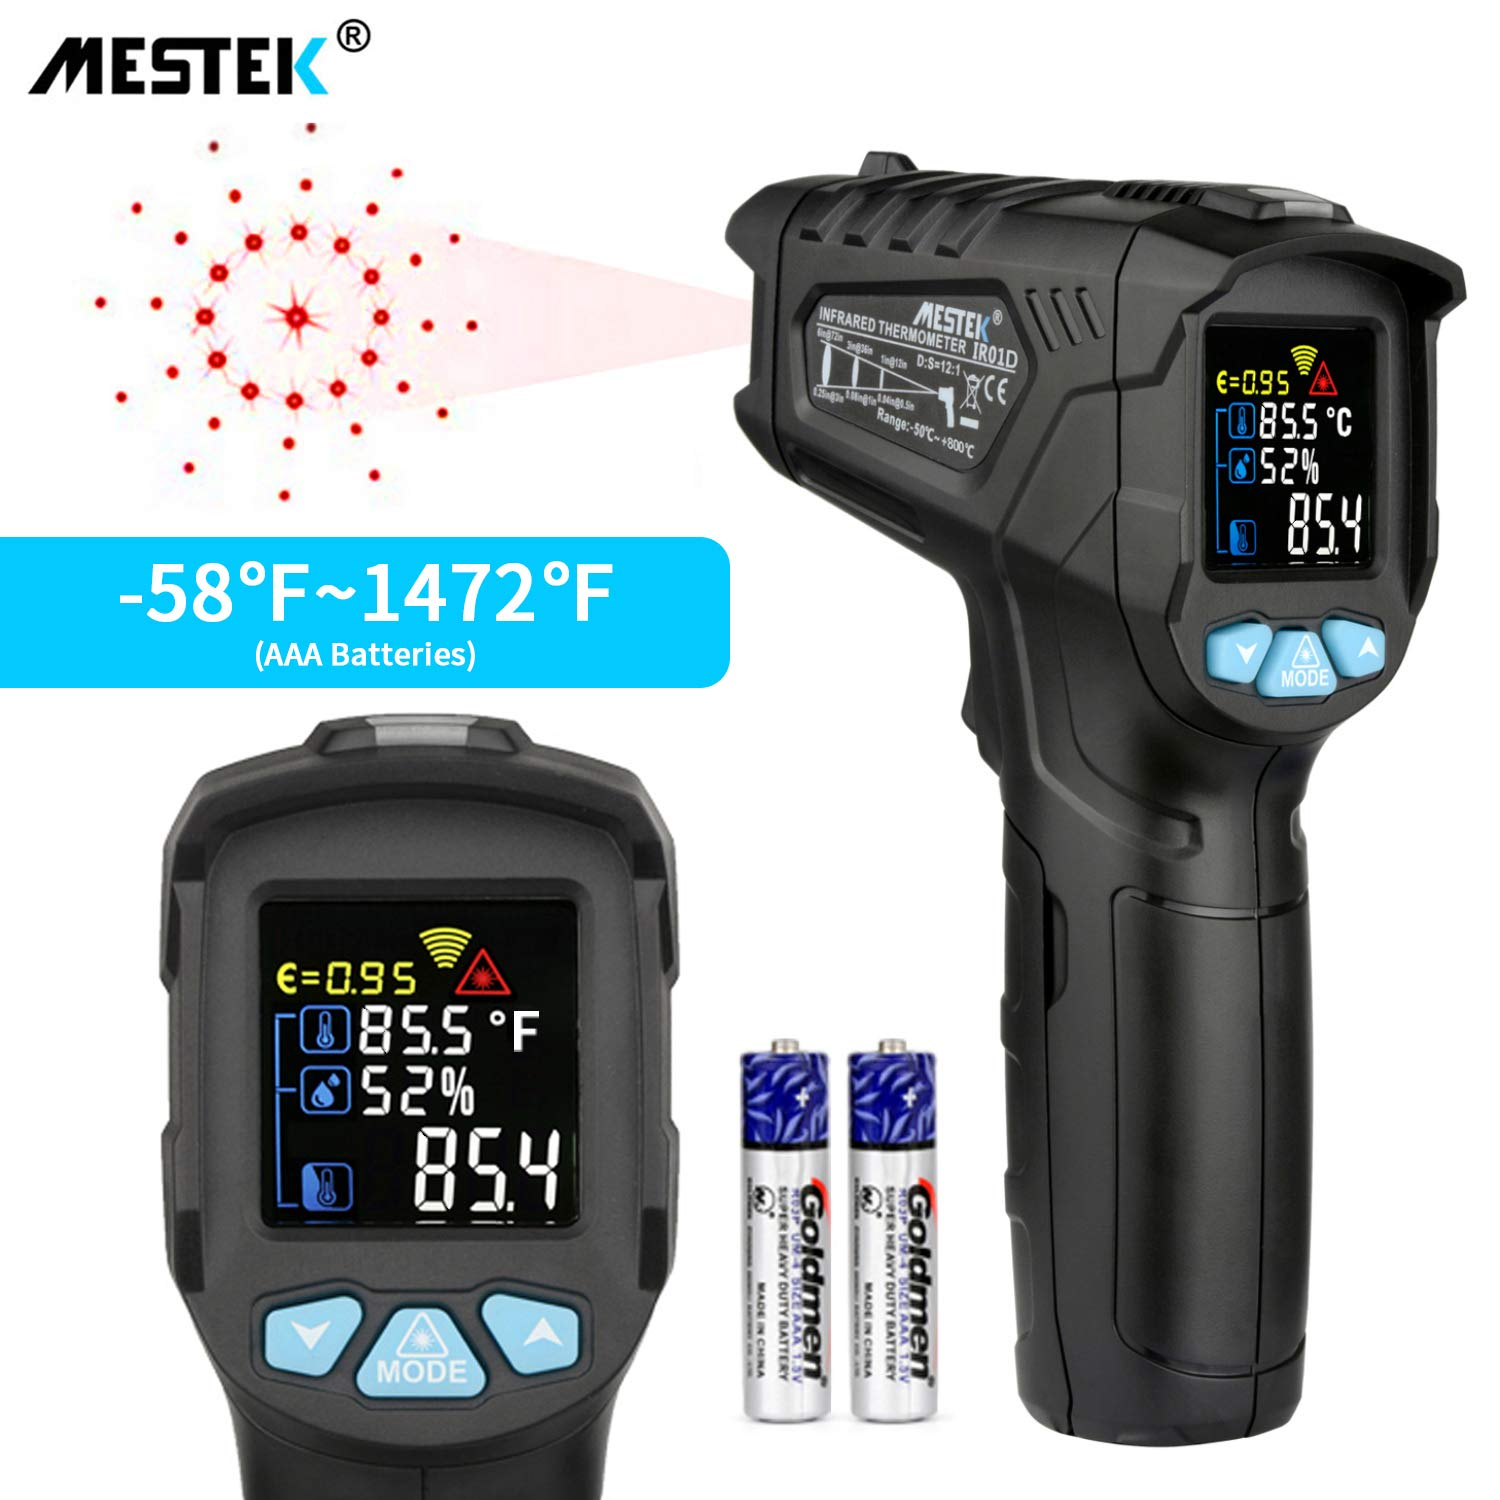 Infrared Thermometer Temperature Gun MESTEK Non-Contact Laser Digital Thermometers with Color LCD Screen -58℉~1472℉(-50℃~800℃) Adjustable Emissivity Humidity Alarm Setting Max/Hold Indoor Outdoor Home by MESTEK